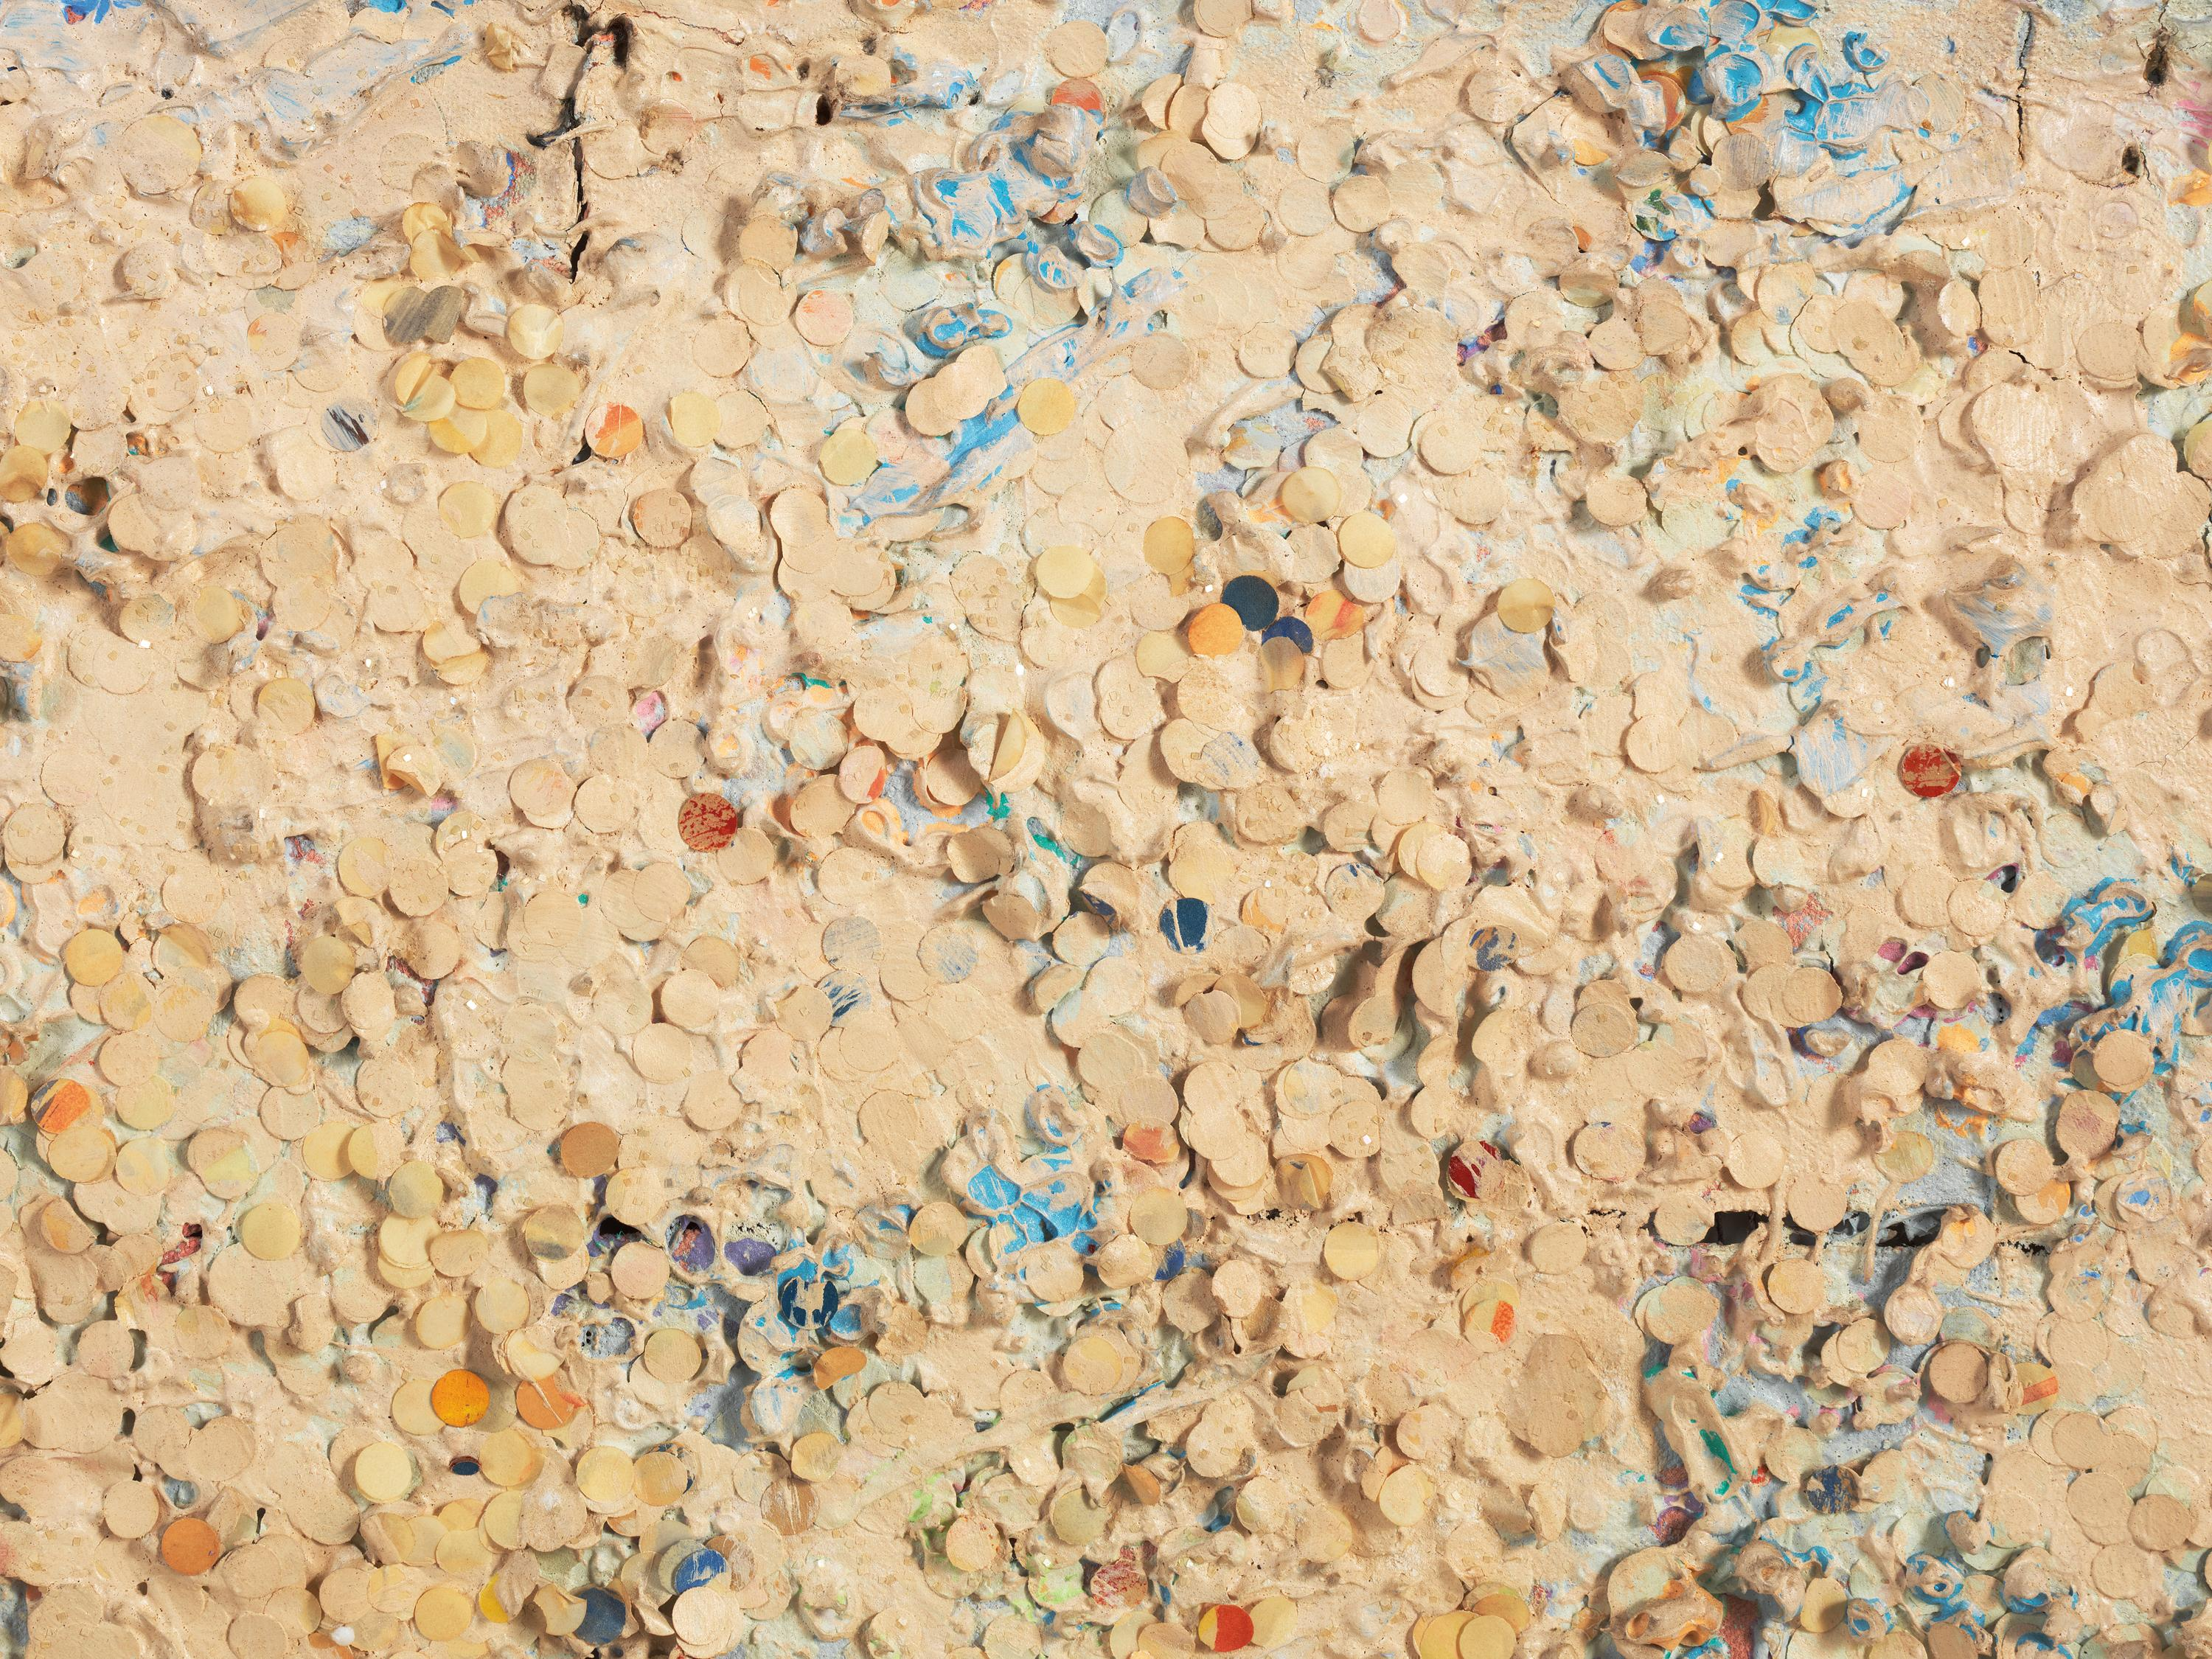 A beige, textured surface covered in small circles is accented with hints of blue, orange, and red paint.